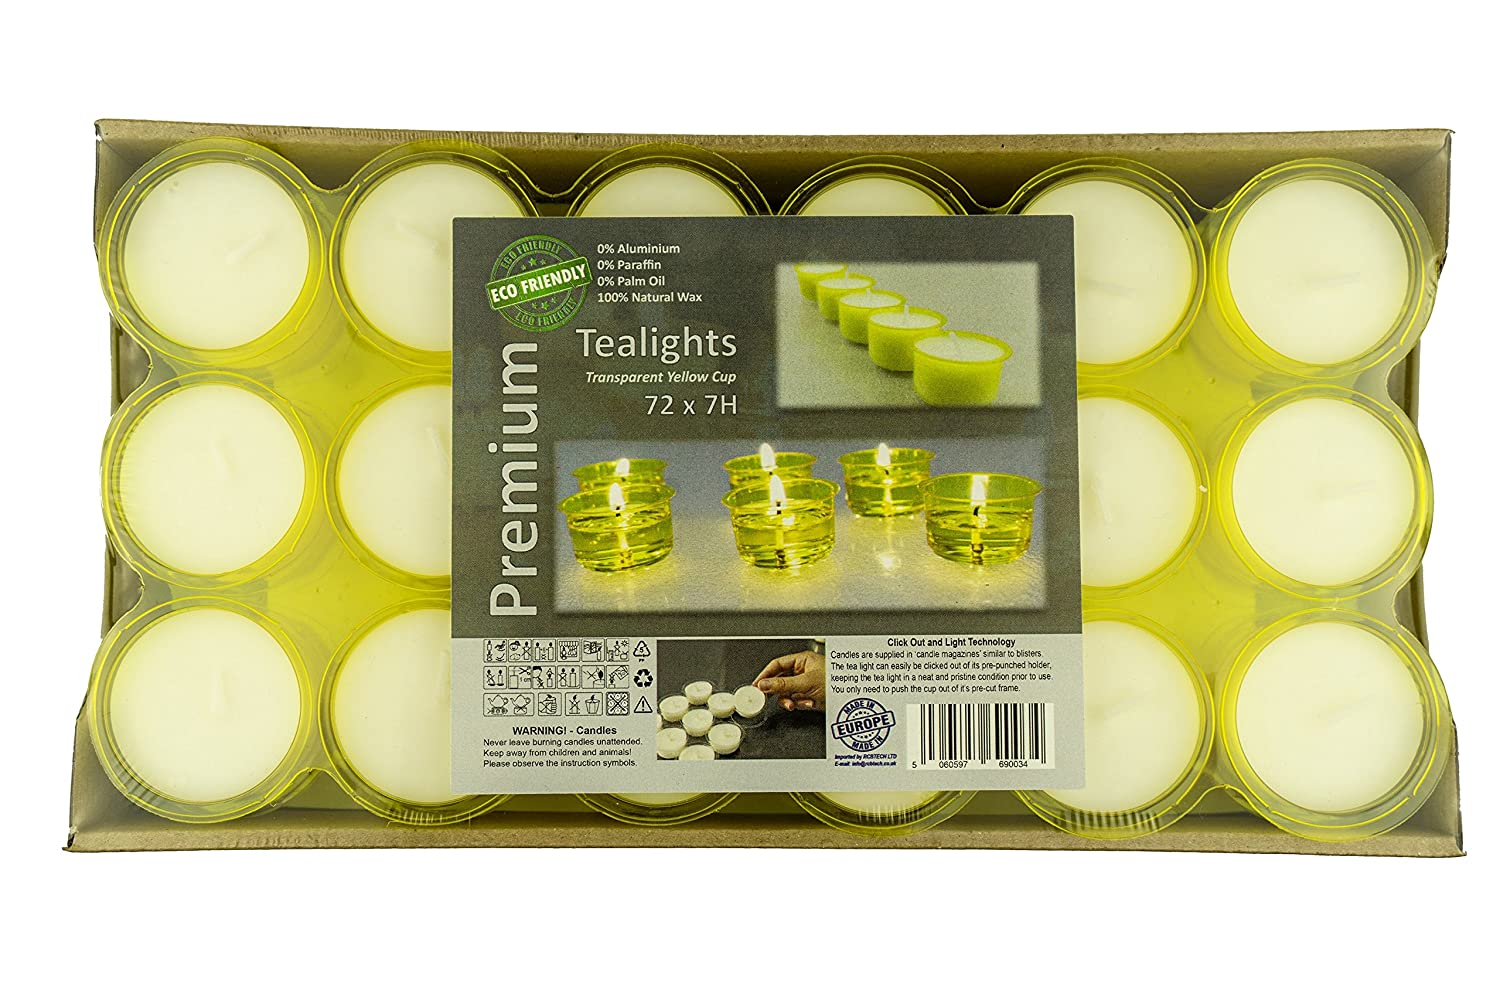 Premium 7 to 8 Hours Long Burning Time Pack of 72 Yellow Transparent Cup tea lights Eco-Friendly tealights Unscented Night Lights Candles Soy Wax Non-Toxic EU